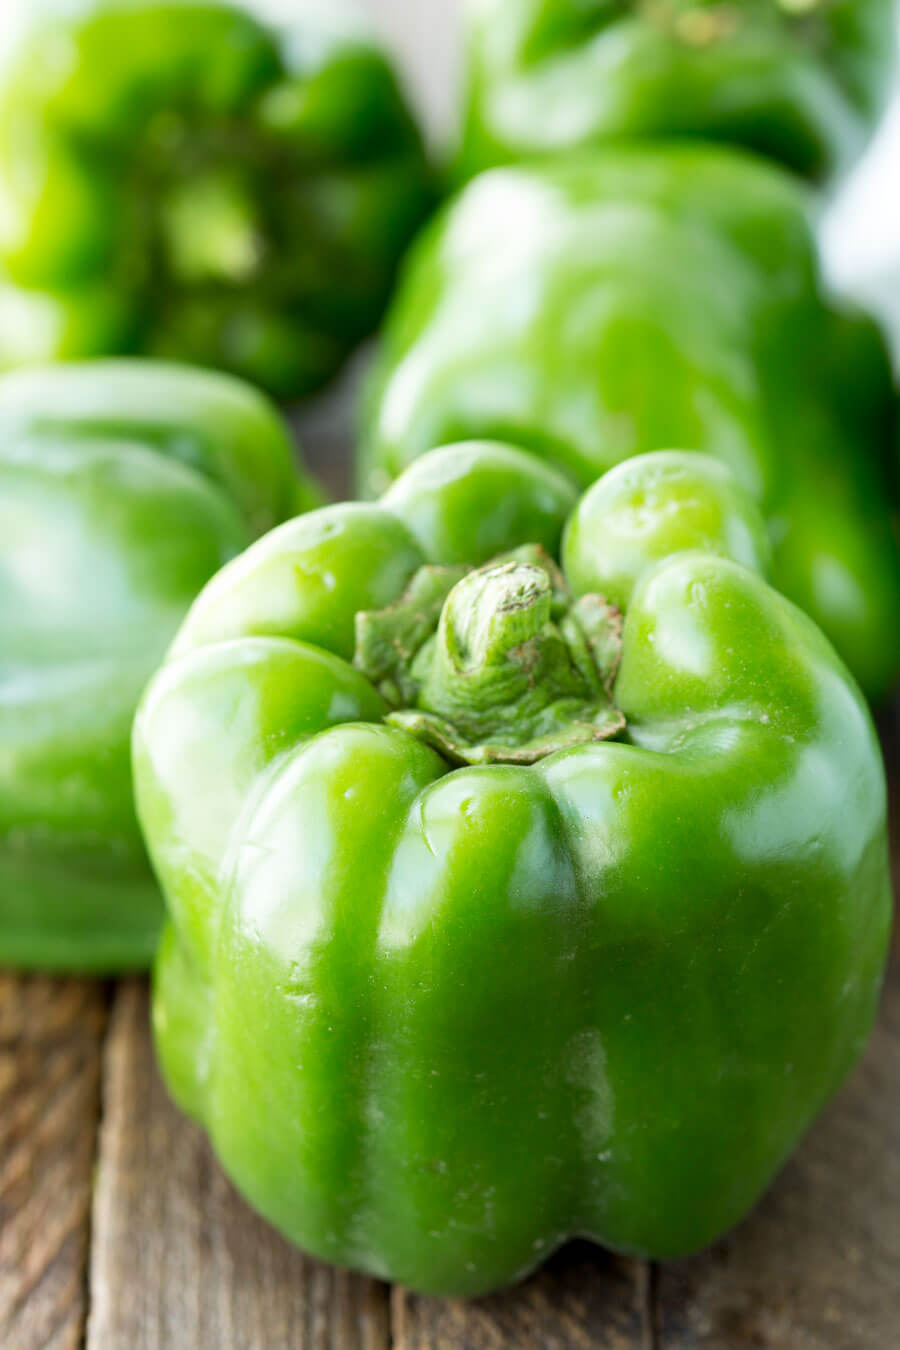 whole green bell peppers on a wooden surface